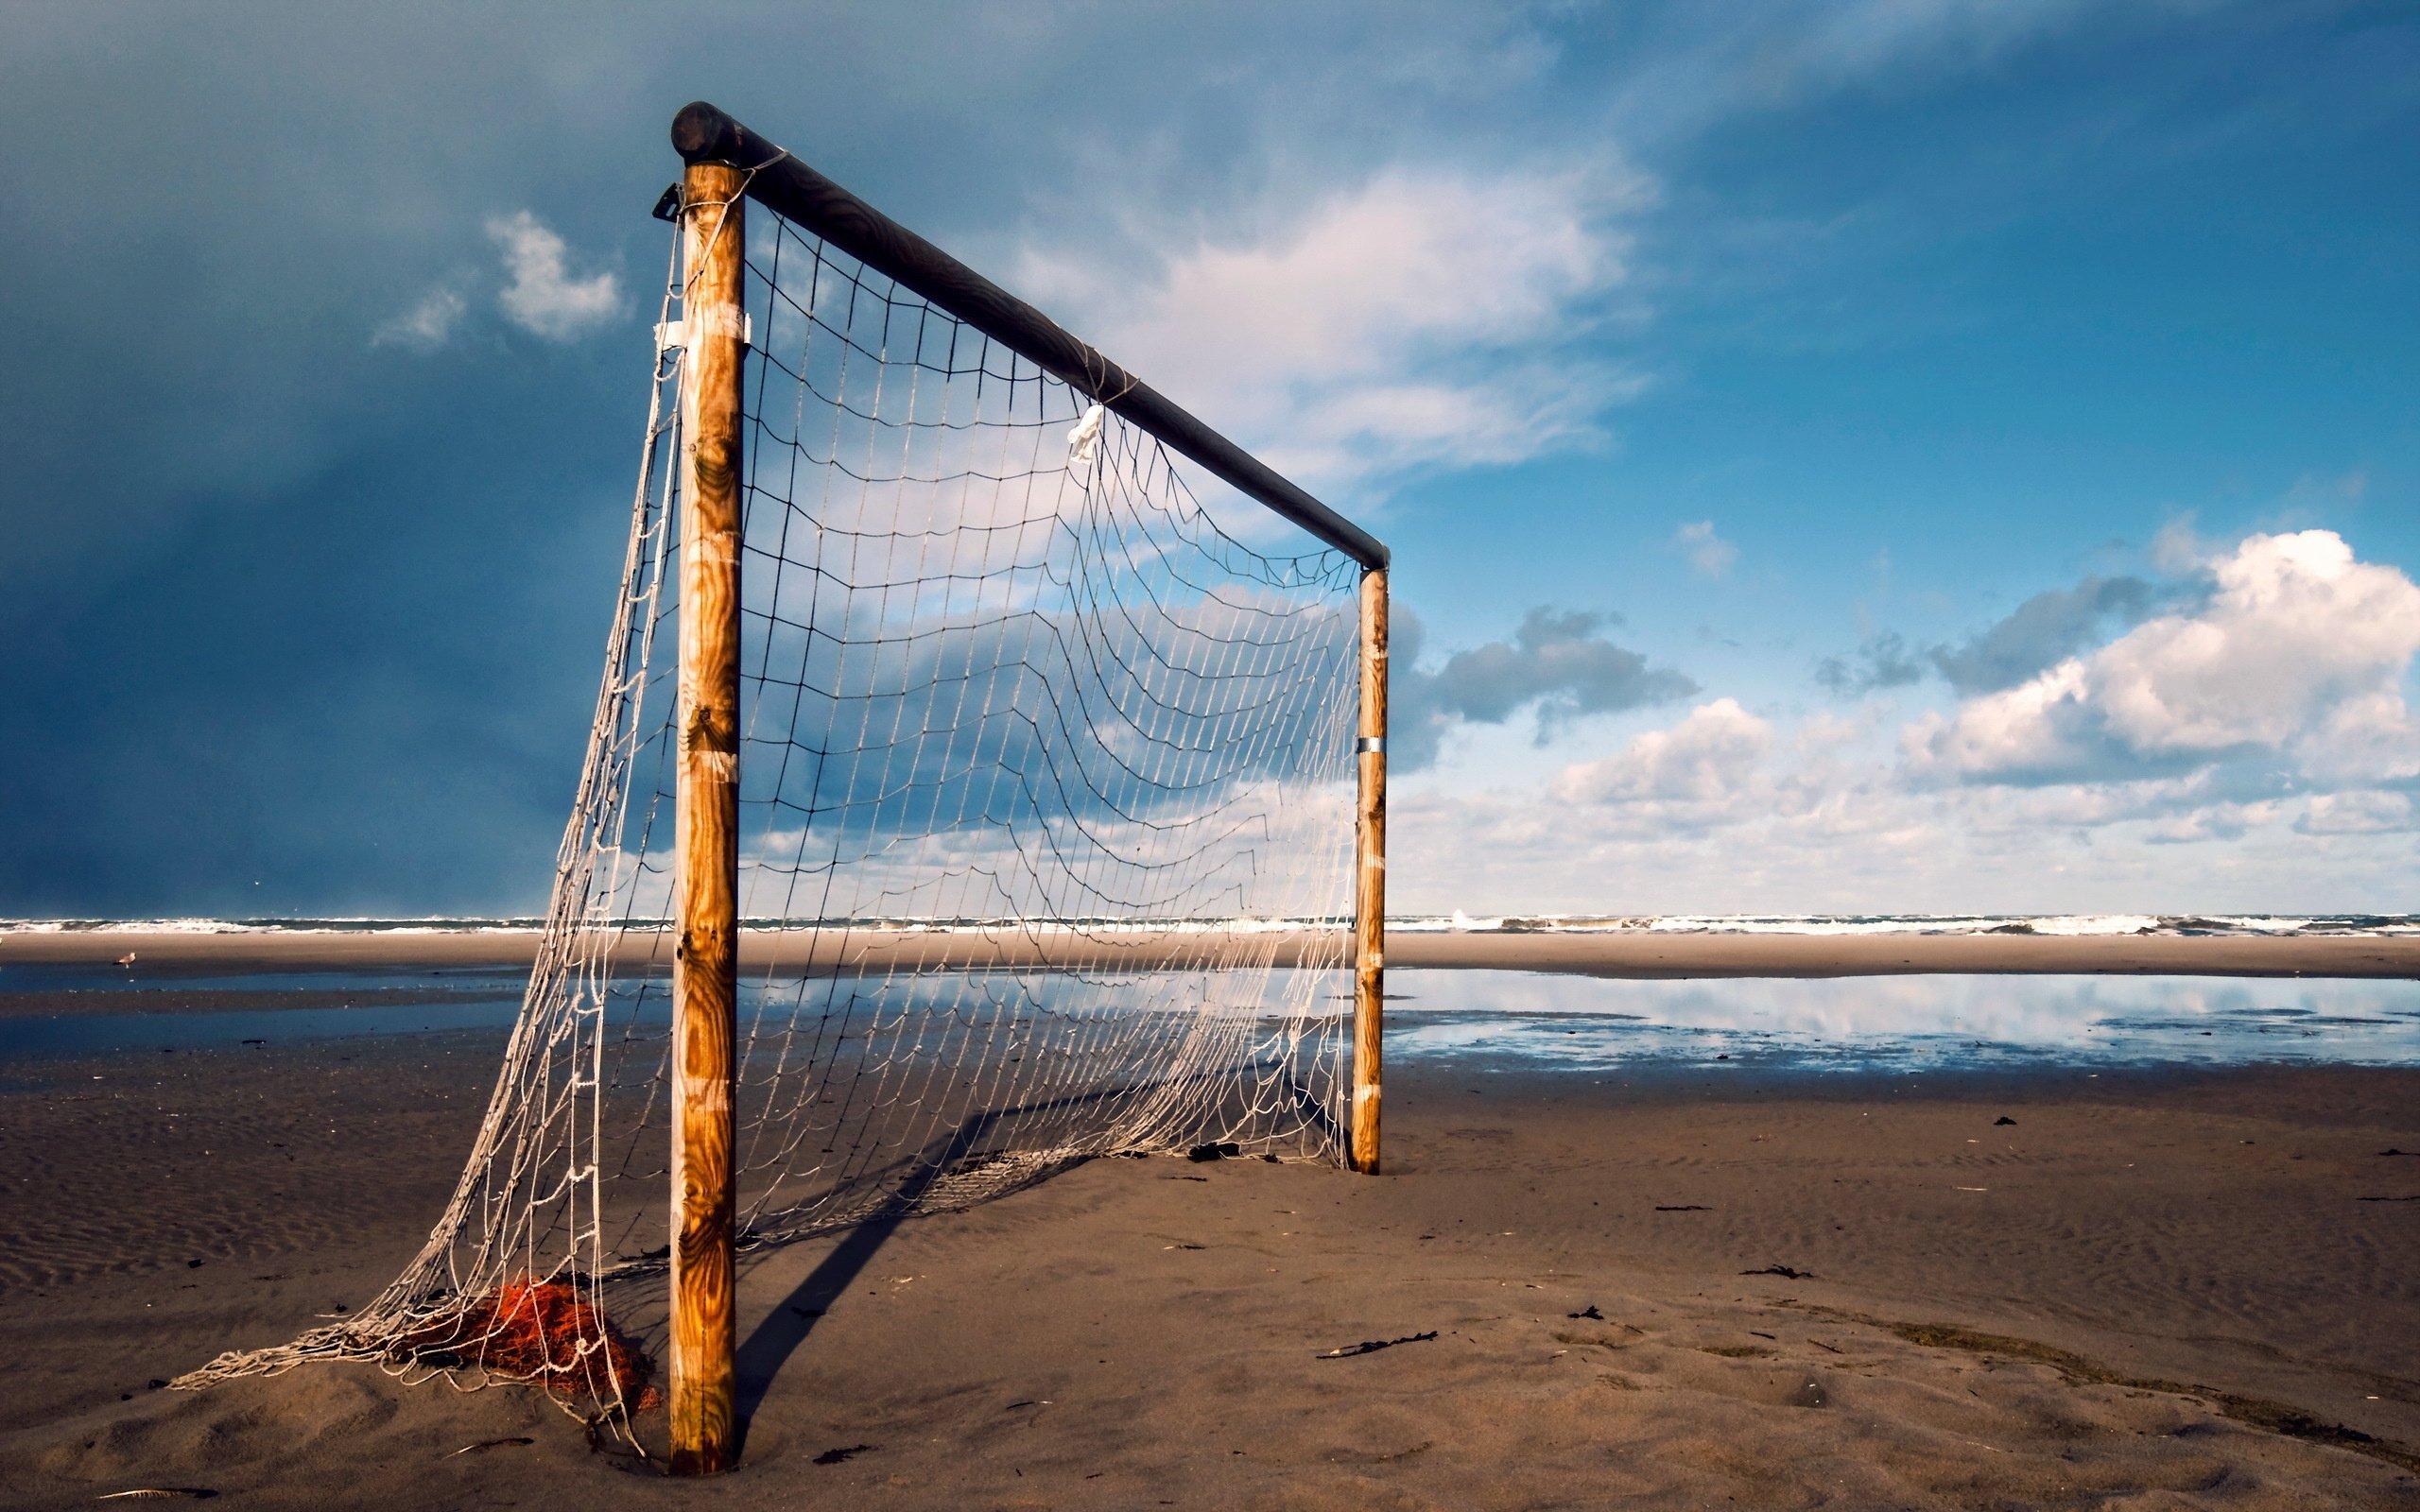 Beach Soccer Wallpaper